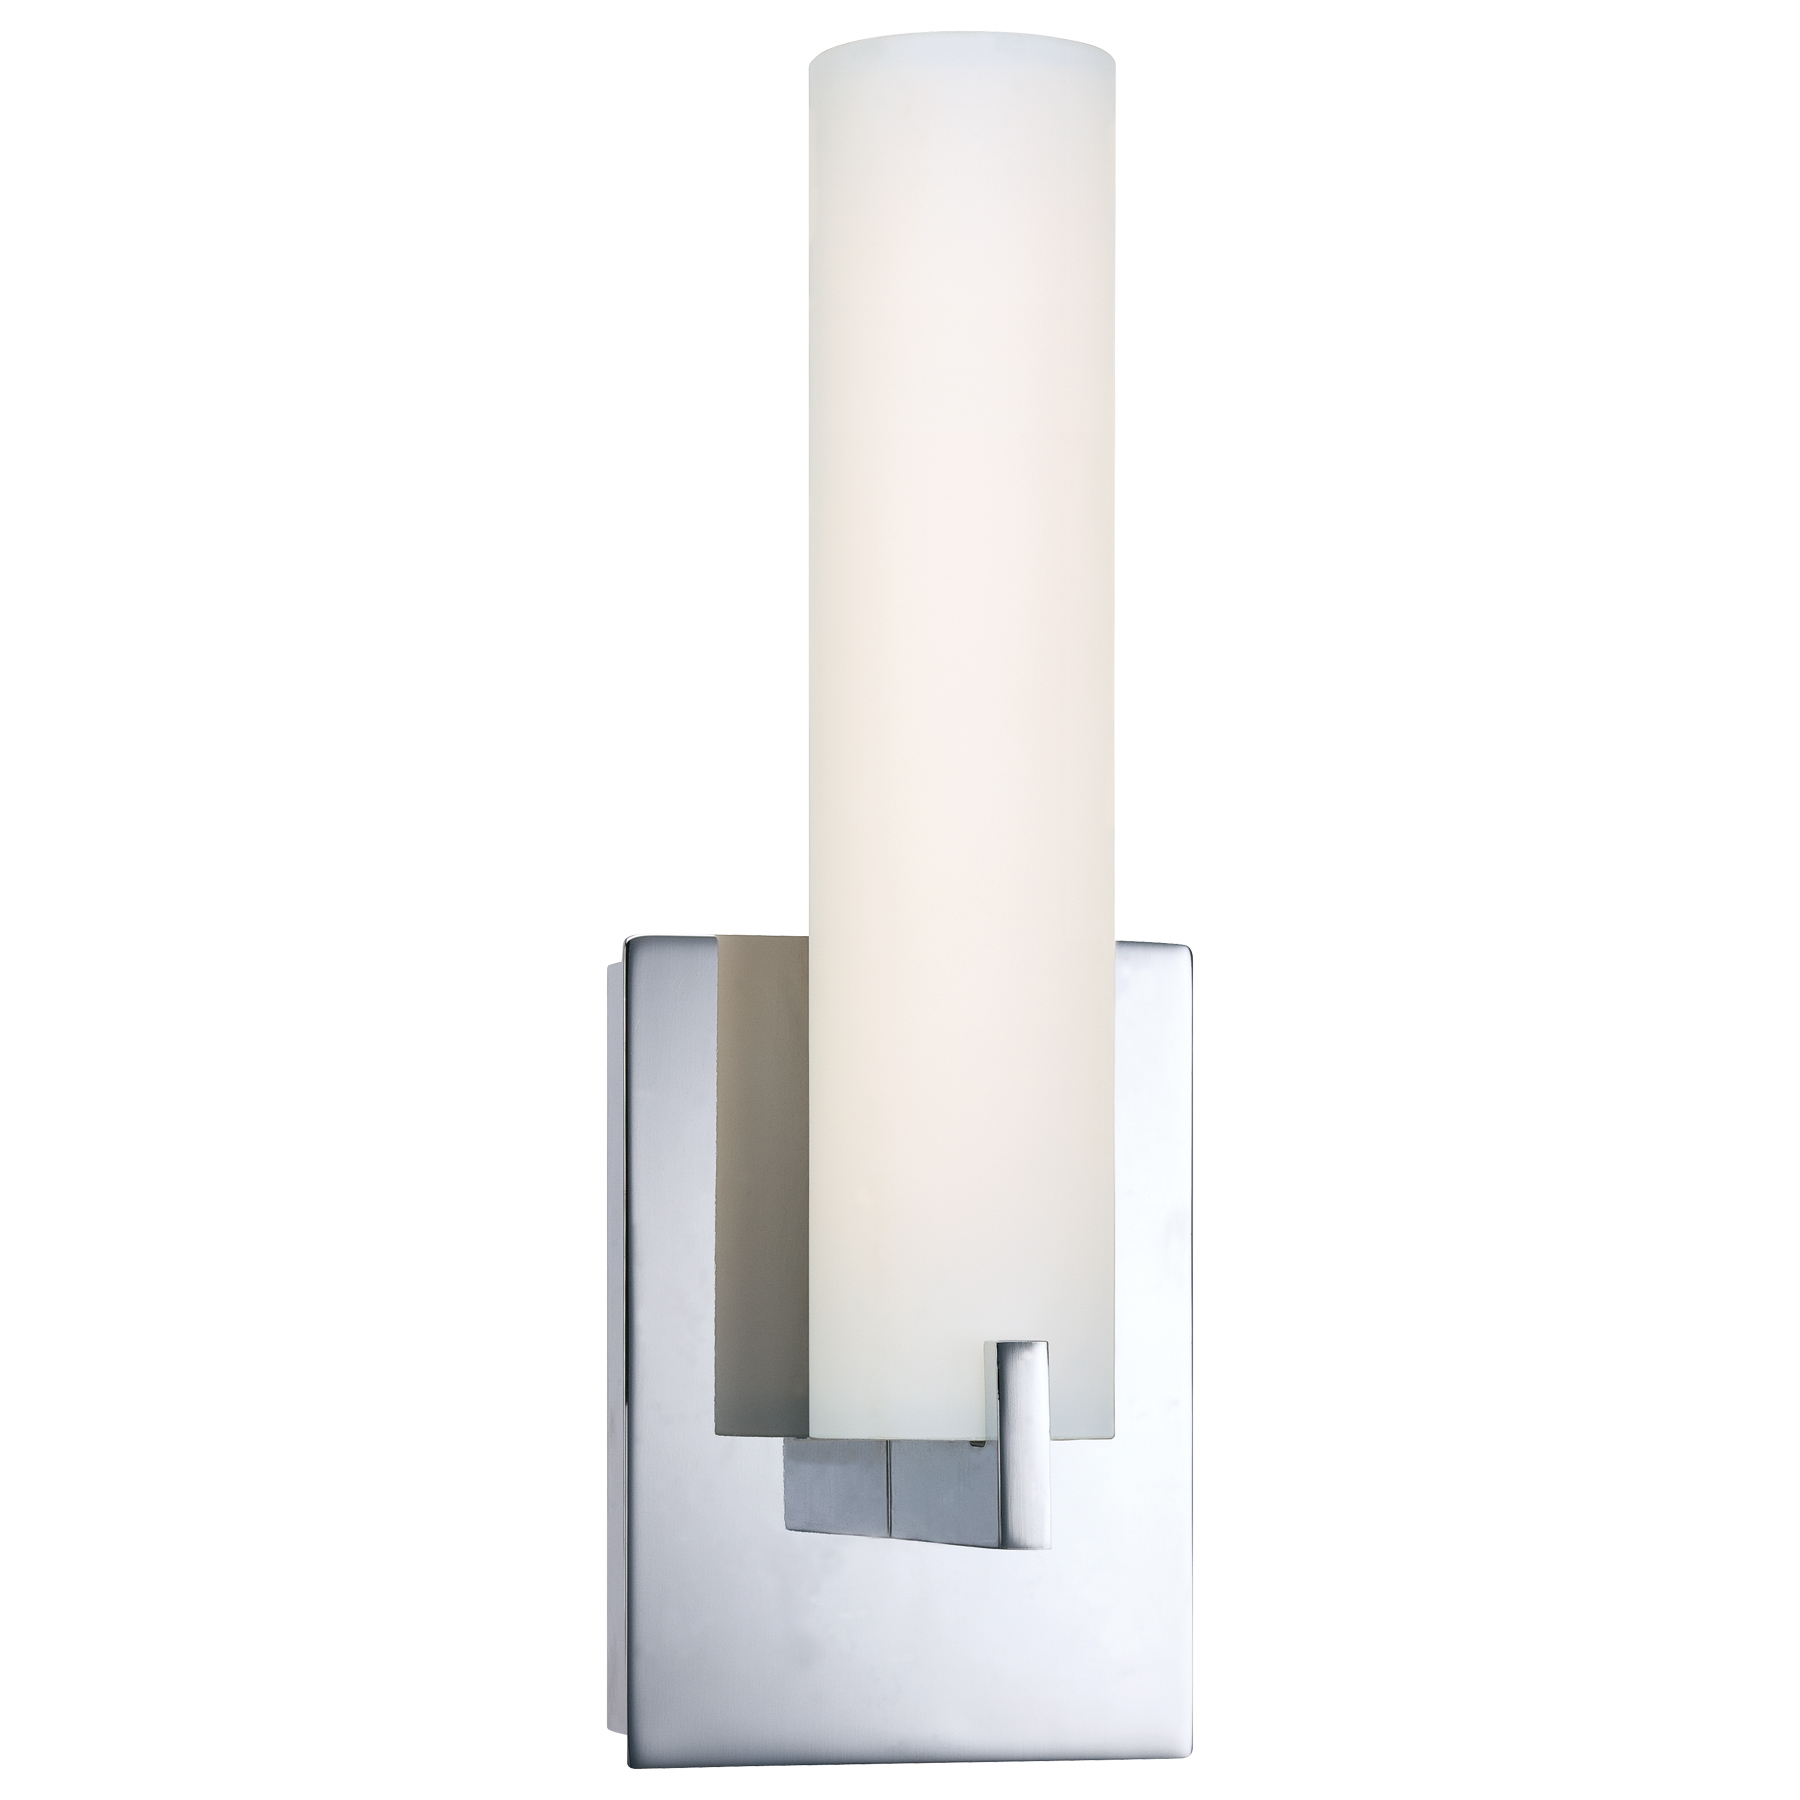 Tube LED Vanity Wall Sconce by George Kovacs